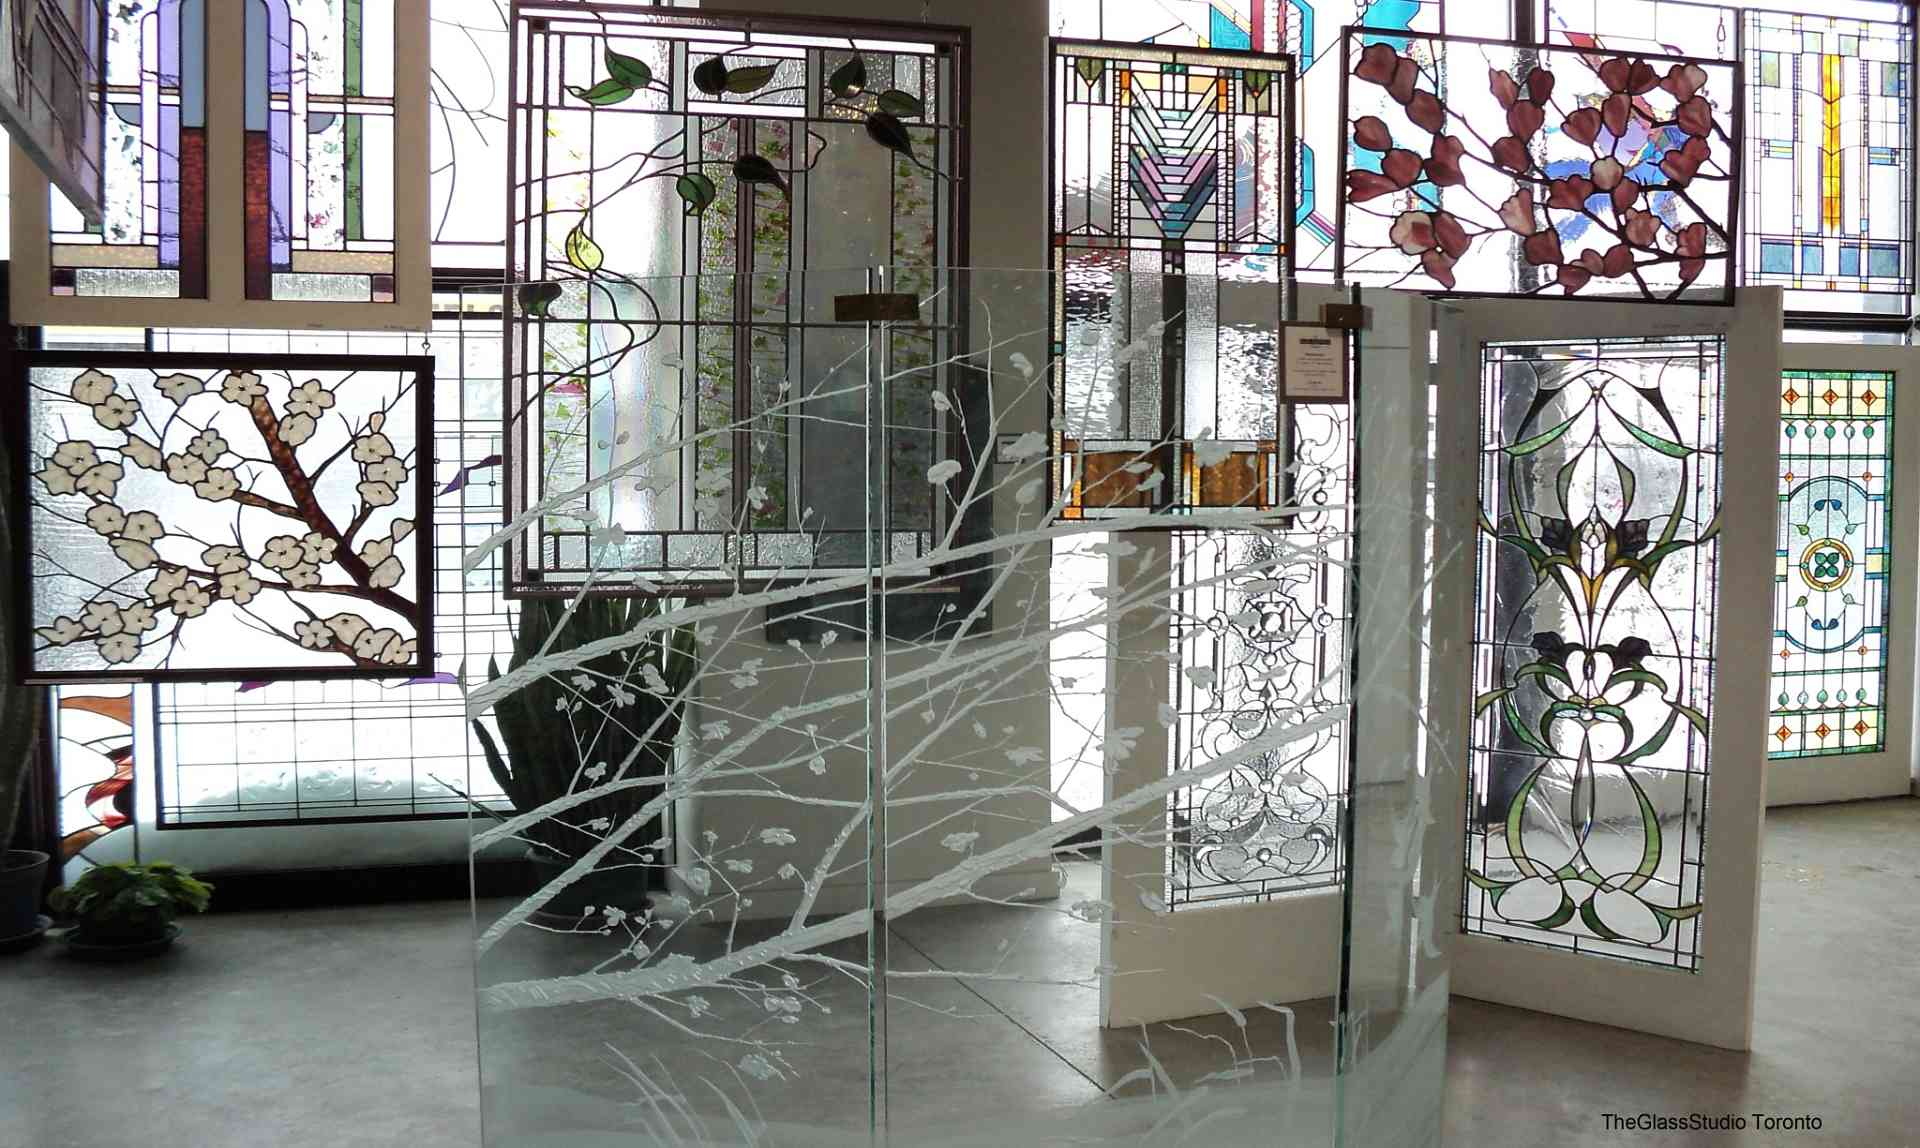 Stained glass windows on display in The Glass Studio's Toronto showroom